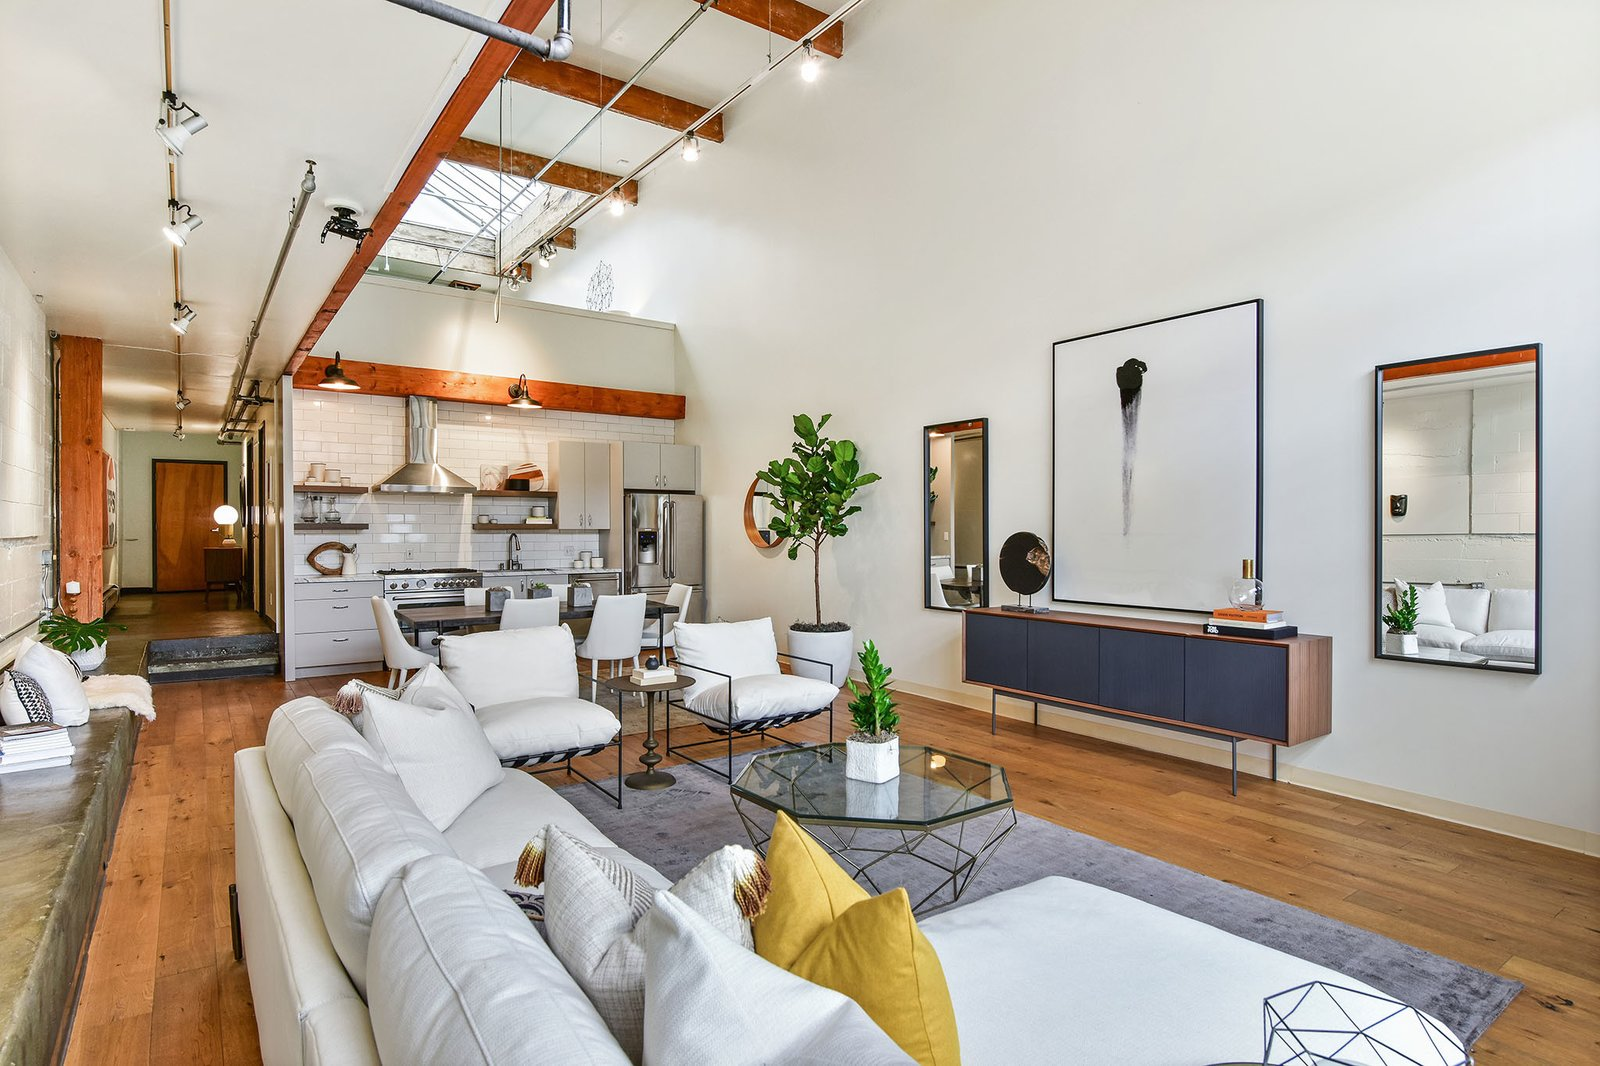 Wide-plank hardwoods line the floor throughout, complementing exposed beams and pillars.  Photo 3 of 9 in A Converted Warehouse Loft in the San Francisco Bay Area Seeks $950K